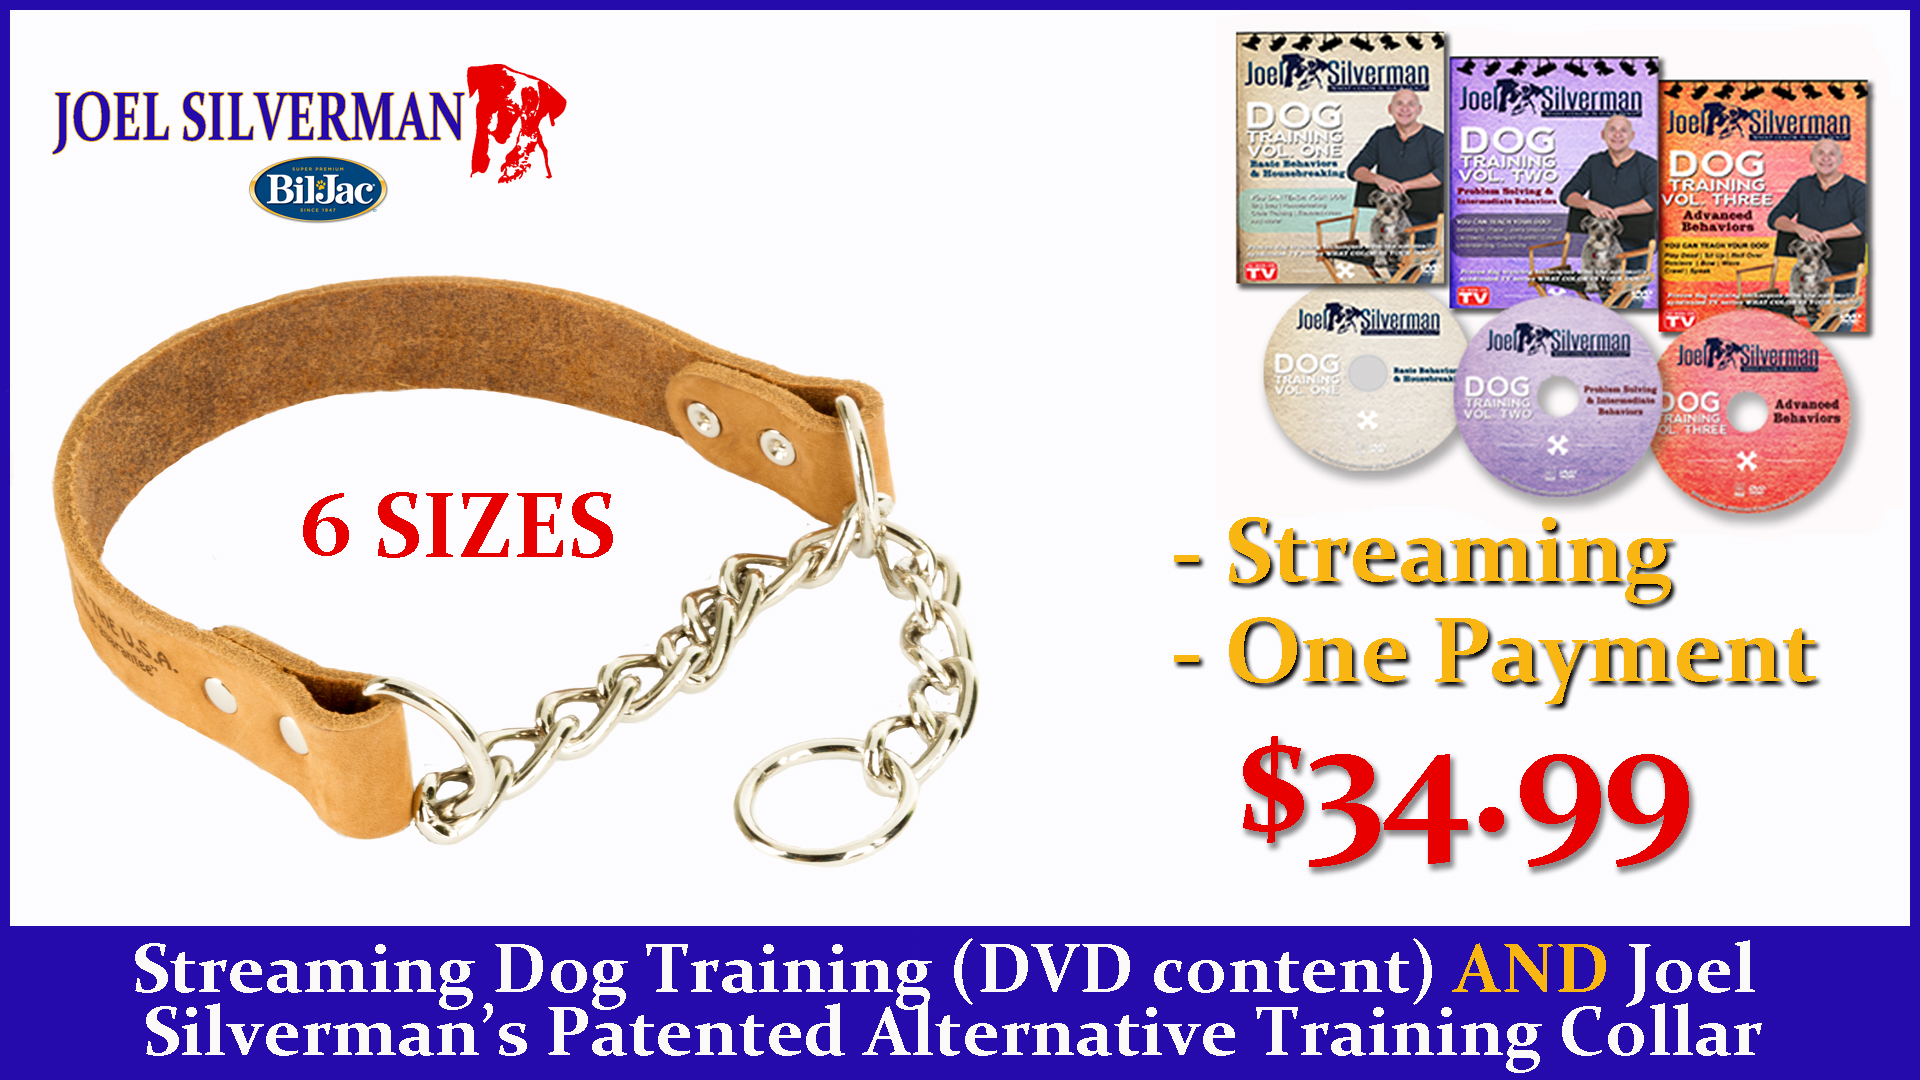 Streaming Dog Training – Basic, Intermediate, And Advanced + Alternative Training Collar